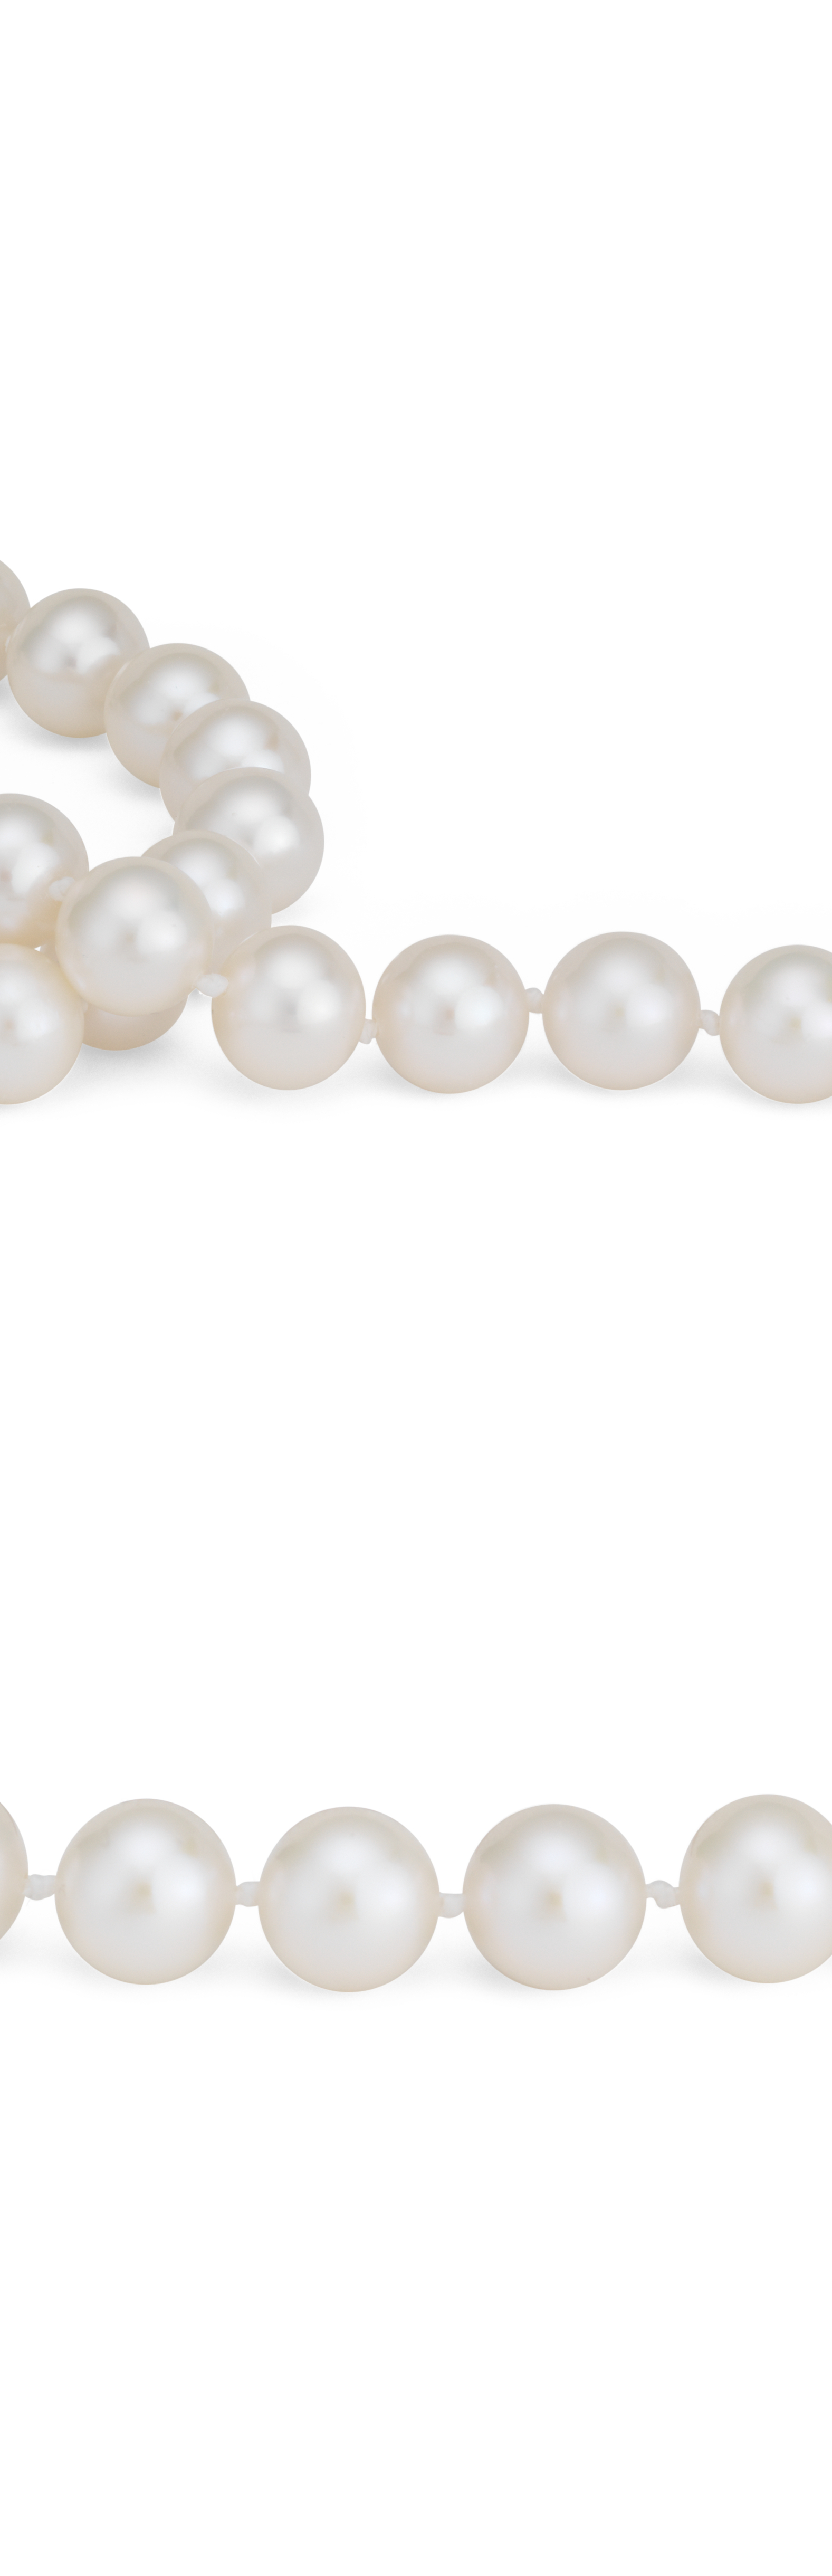 Freshwater Pearl Strands with 14k White or Yellow Gold